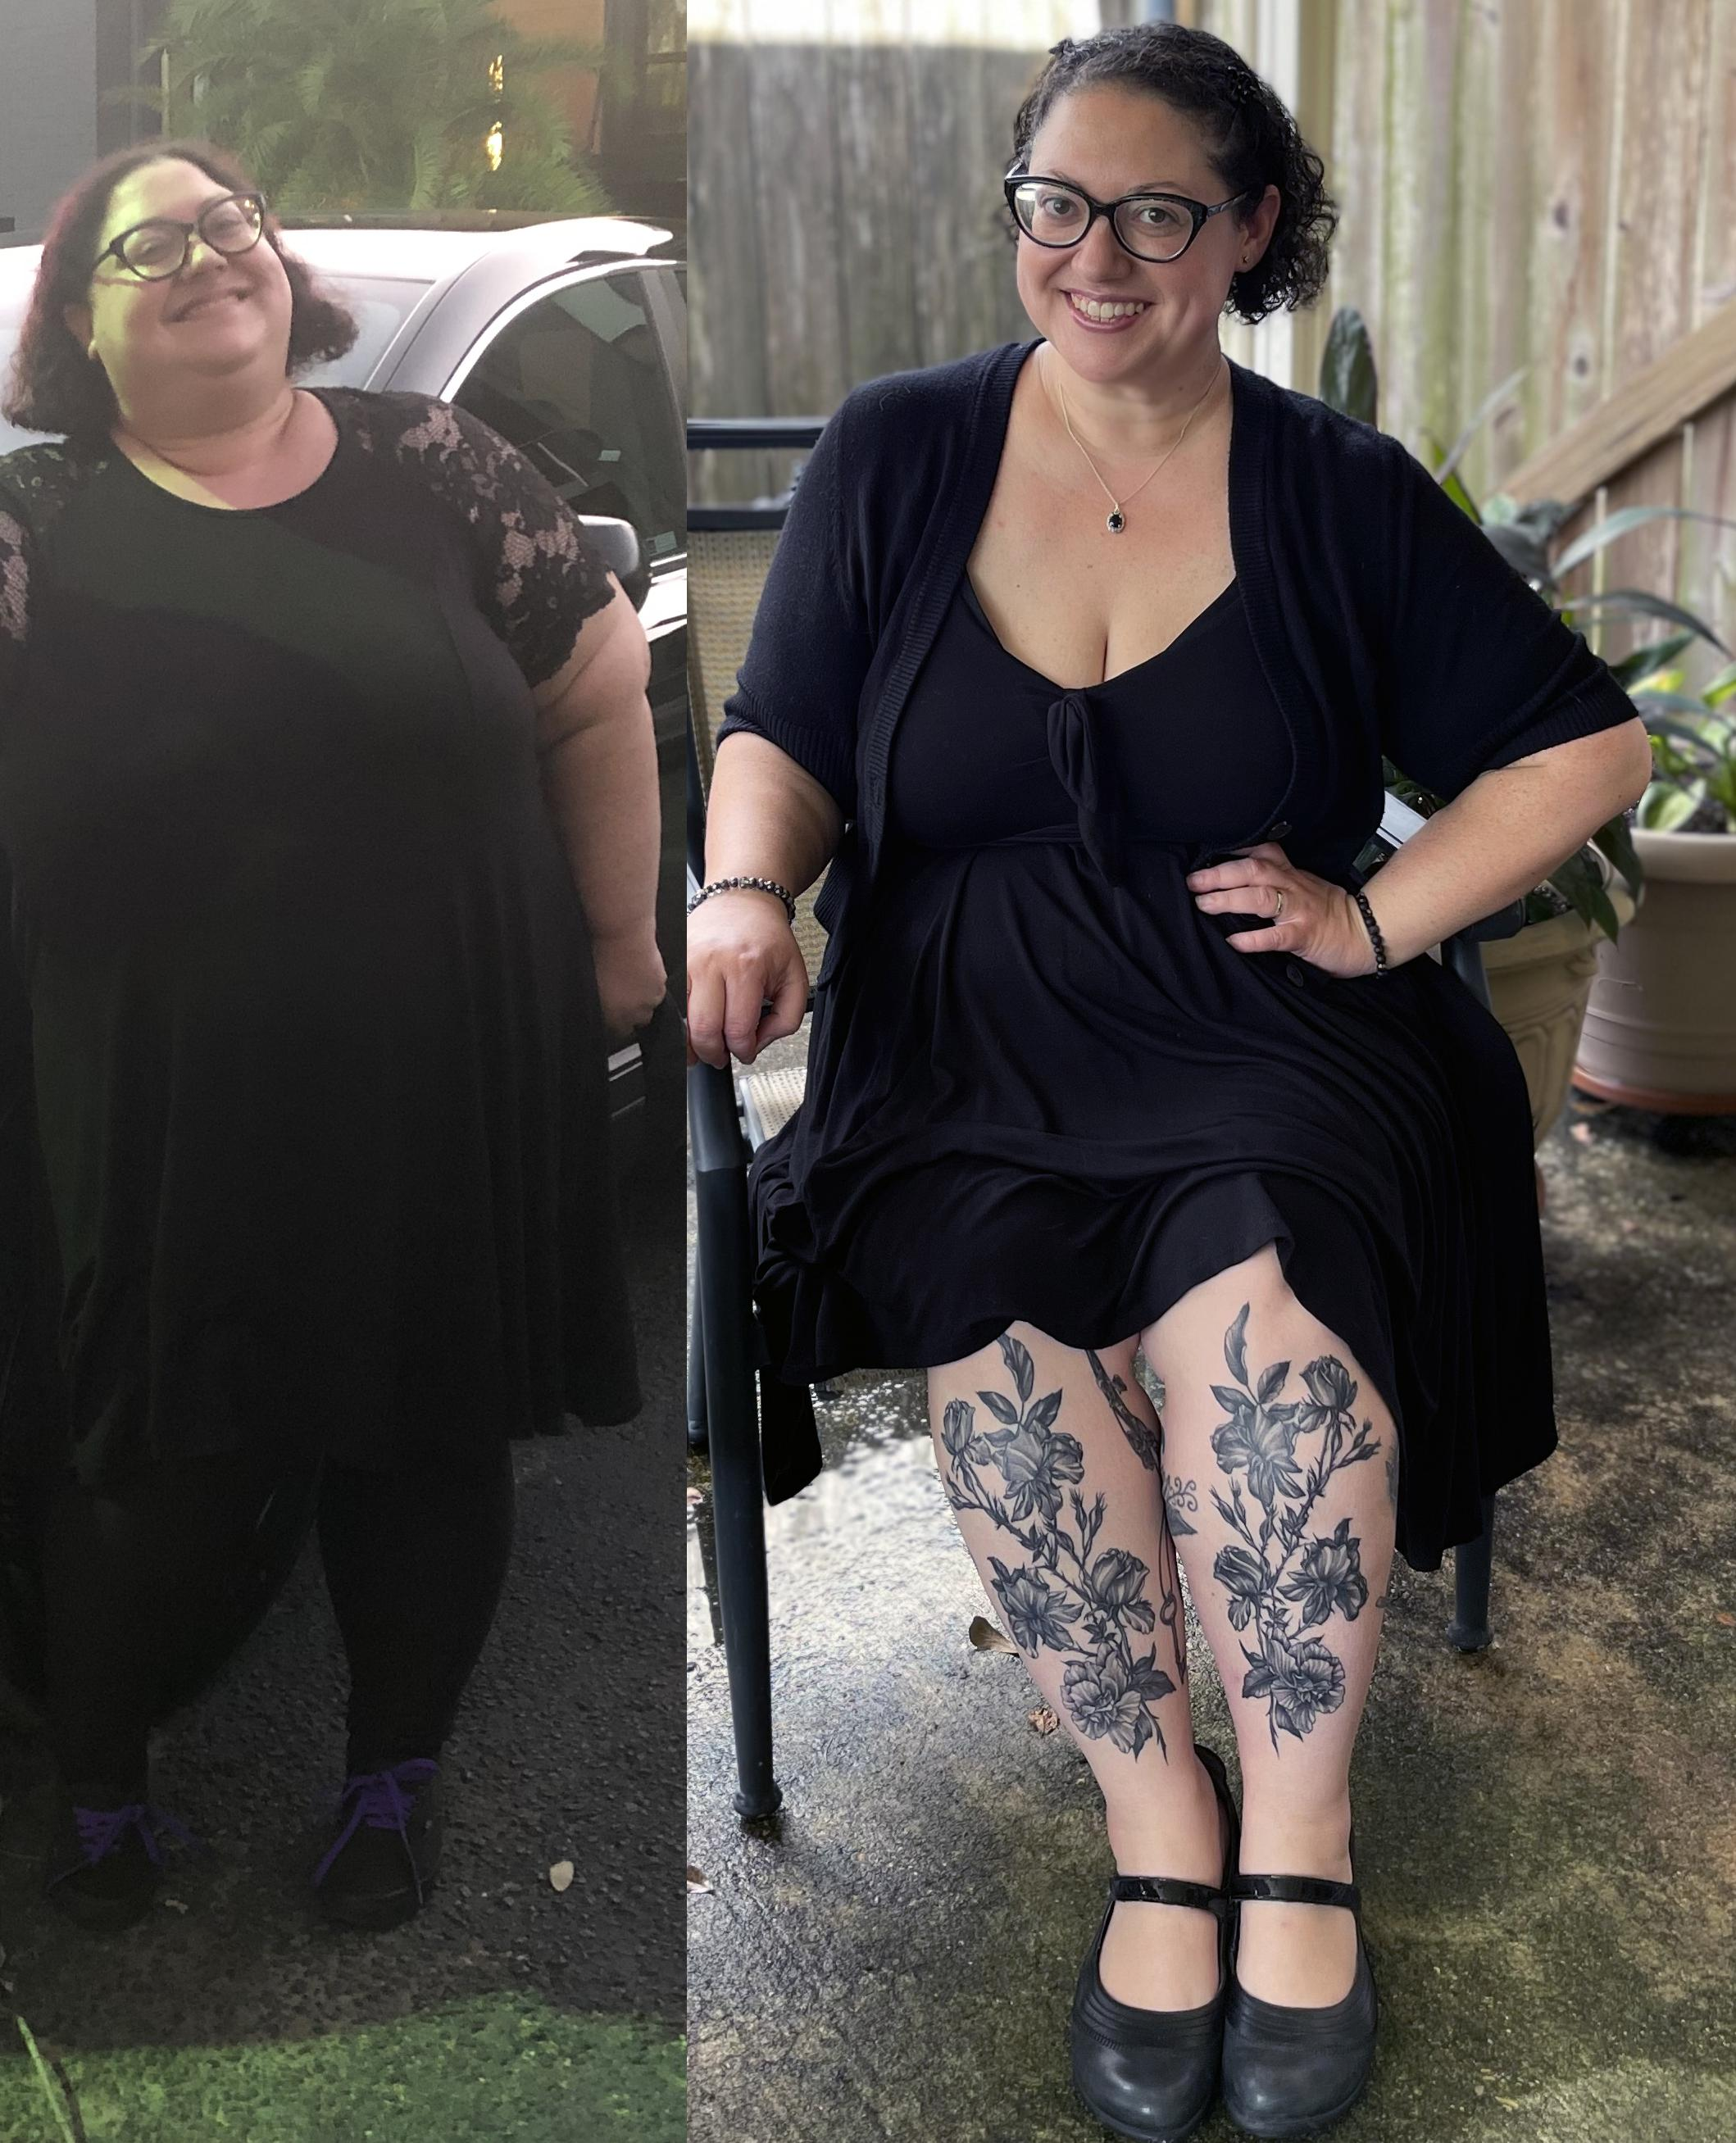 5 feet 3 Female Before and After 138 lbs Weight Loss 342 lbs to 204 lbs